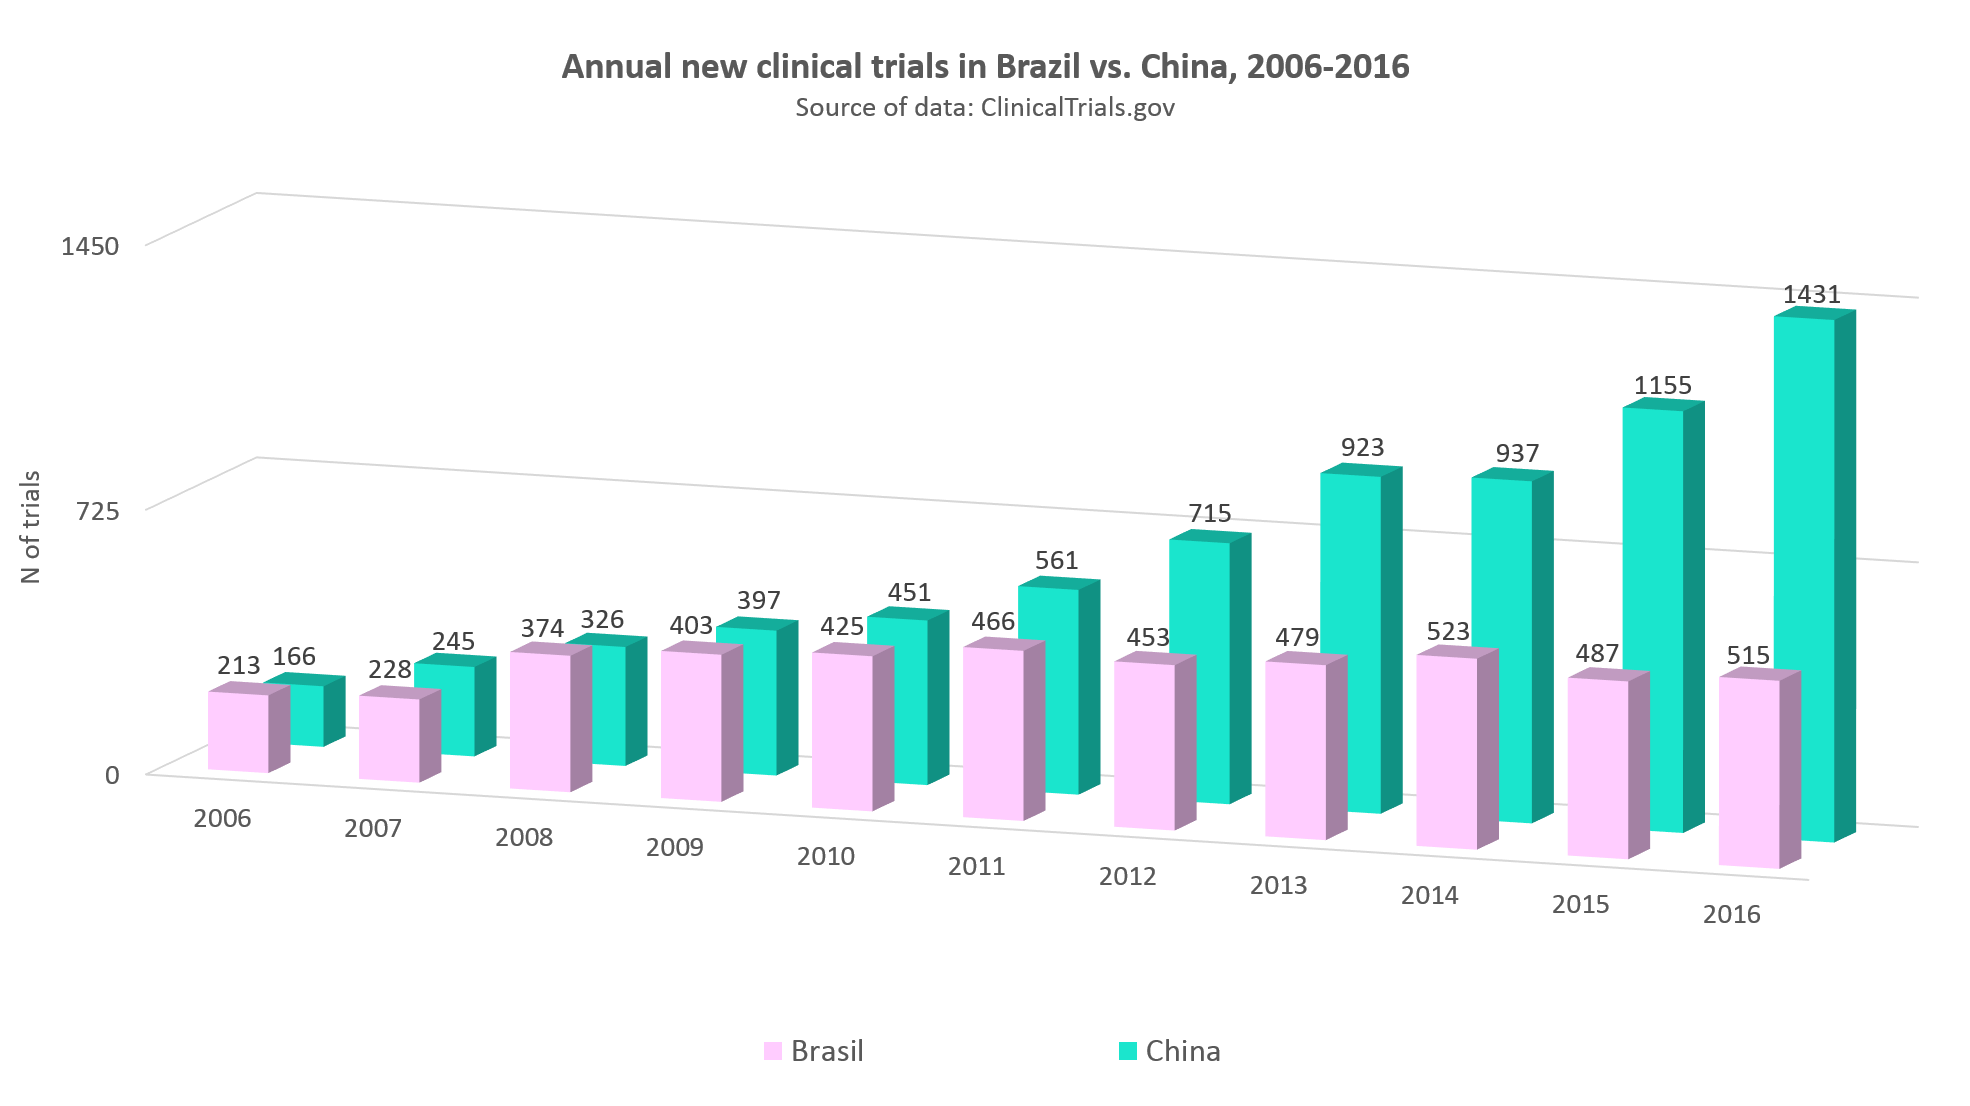 Annual statistics of clinical trials in Brazil vs. China, 2006-2016